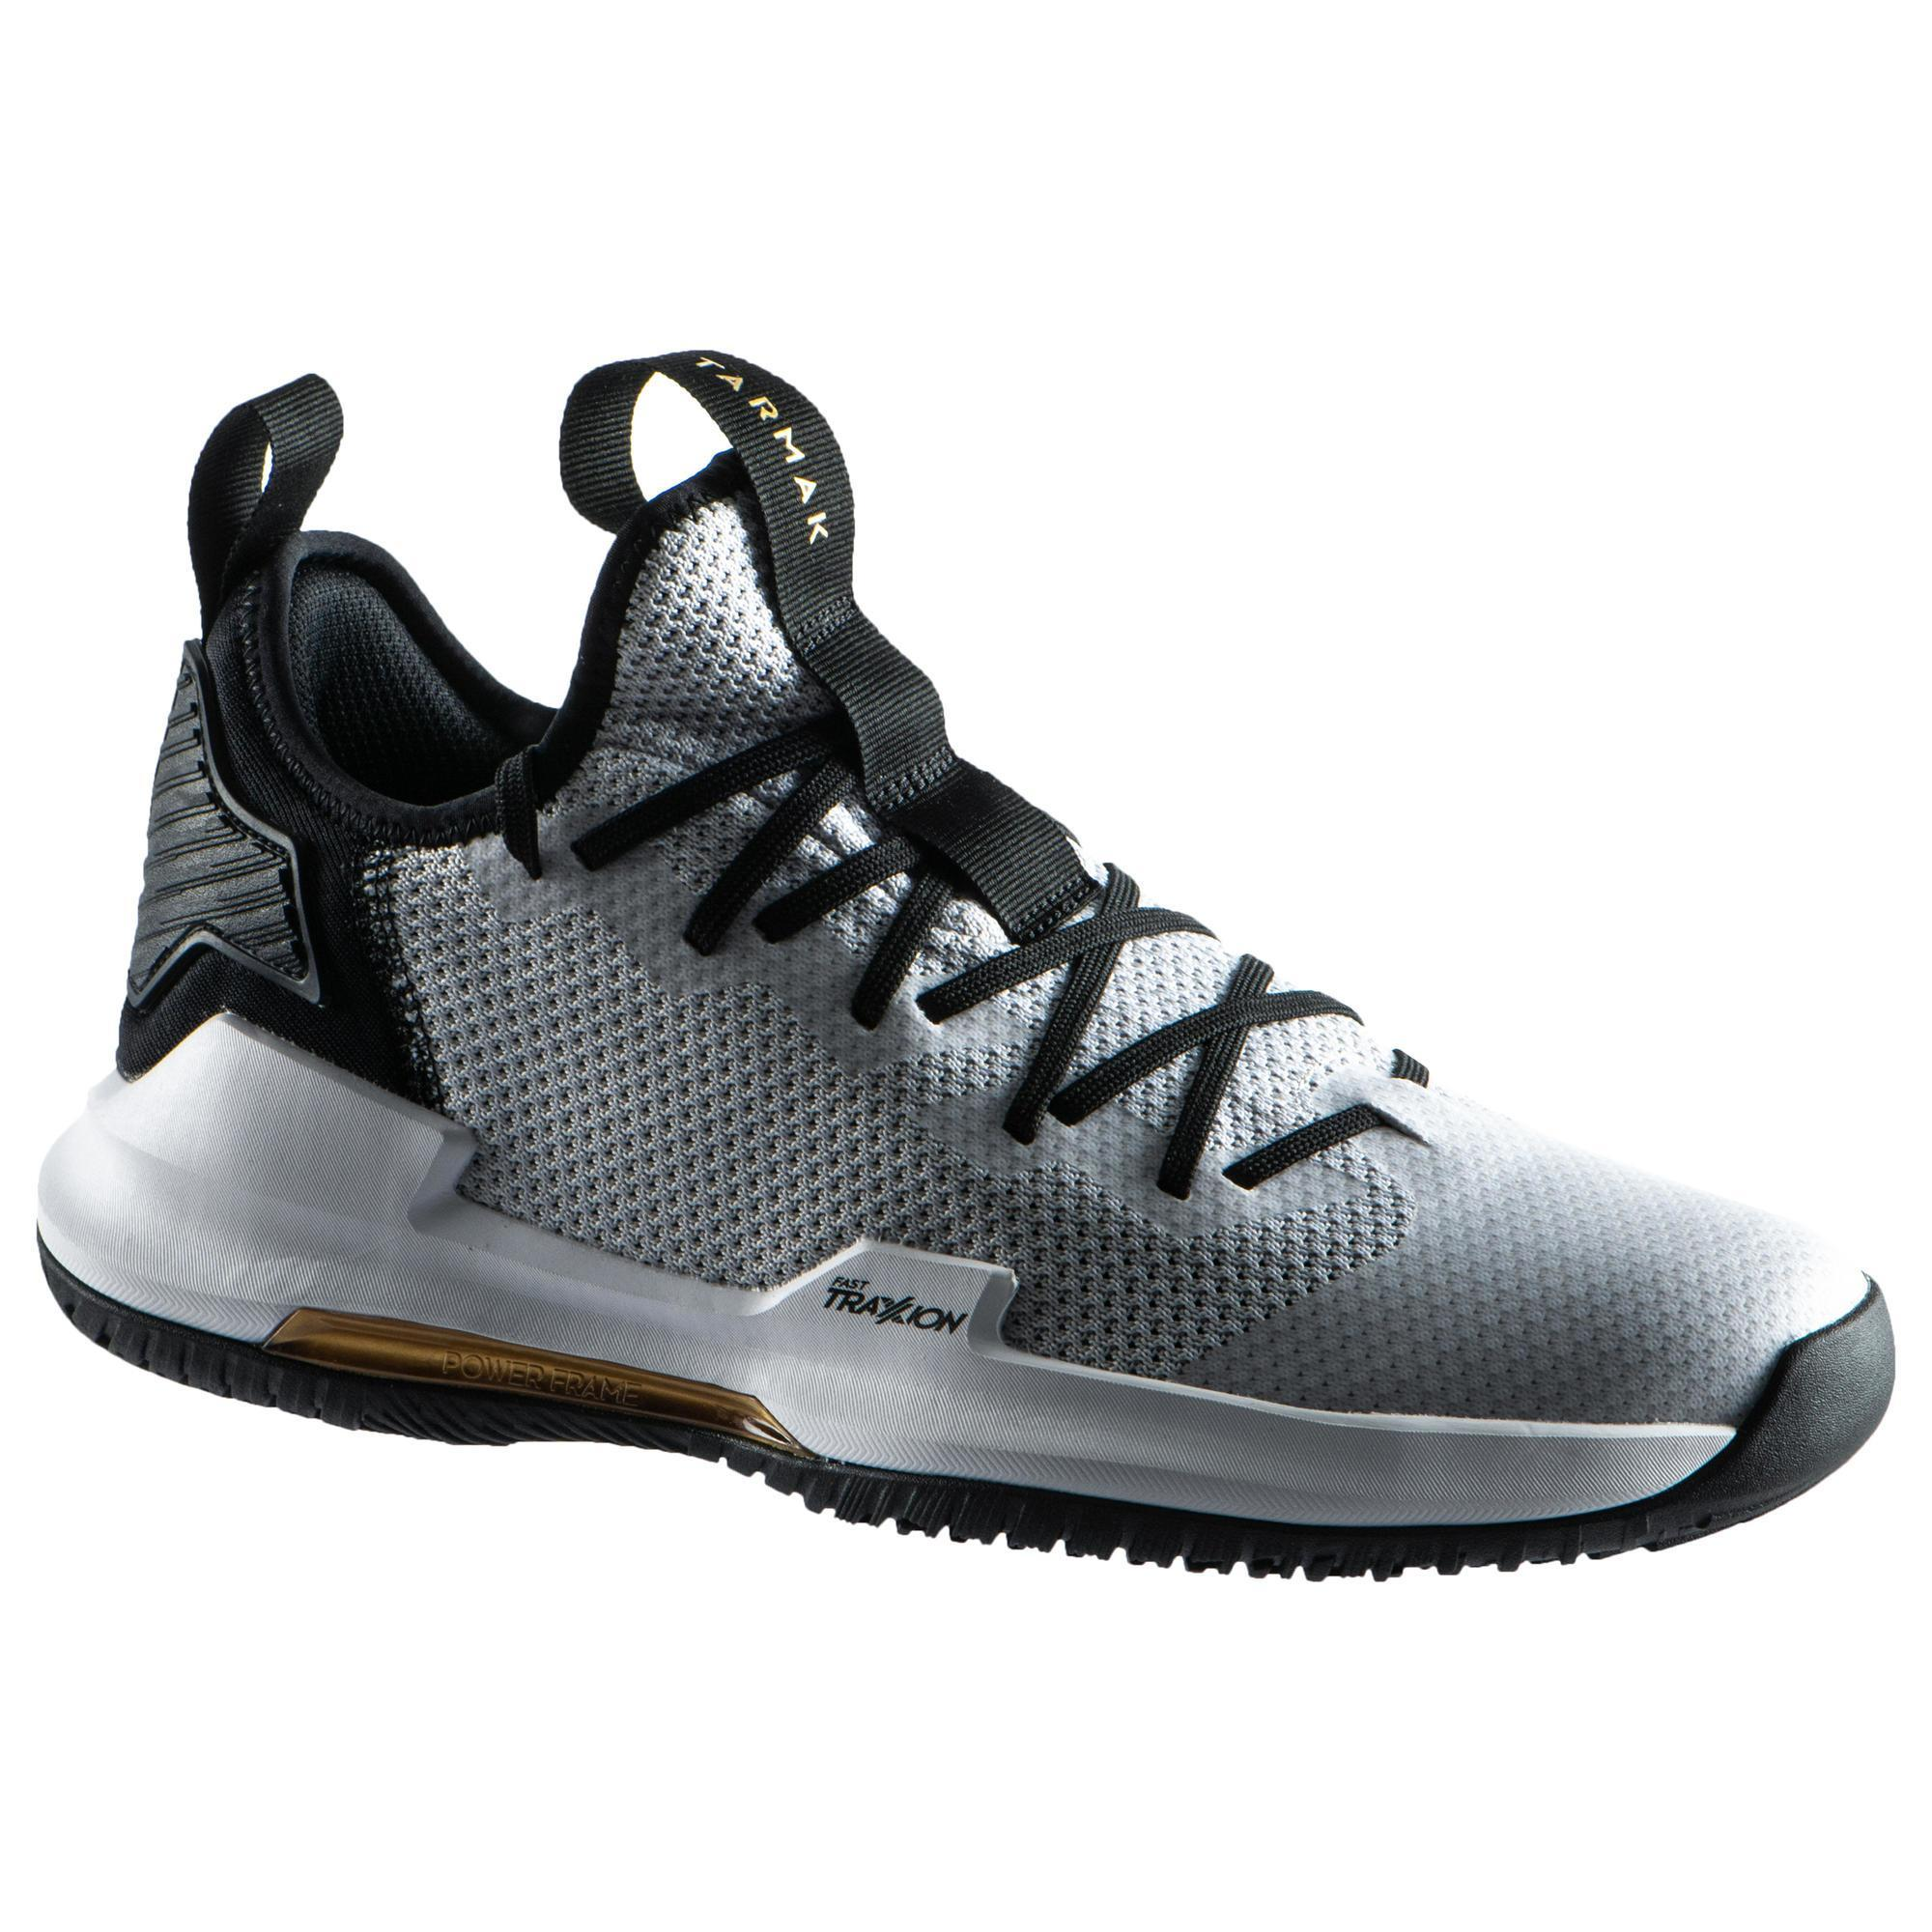 taille 40 ddf69 6280d Chaussures de basketball homme | Chaussures de basket homme ...